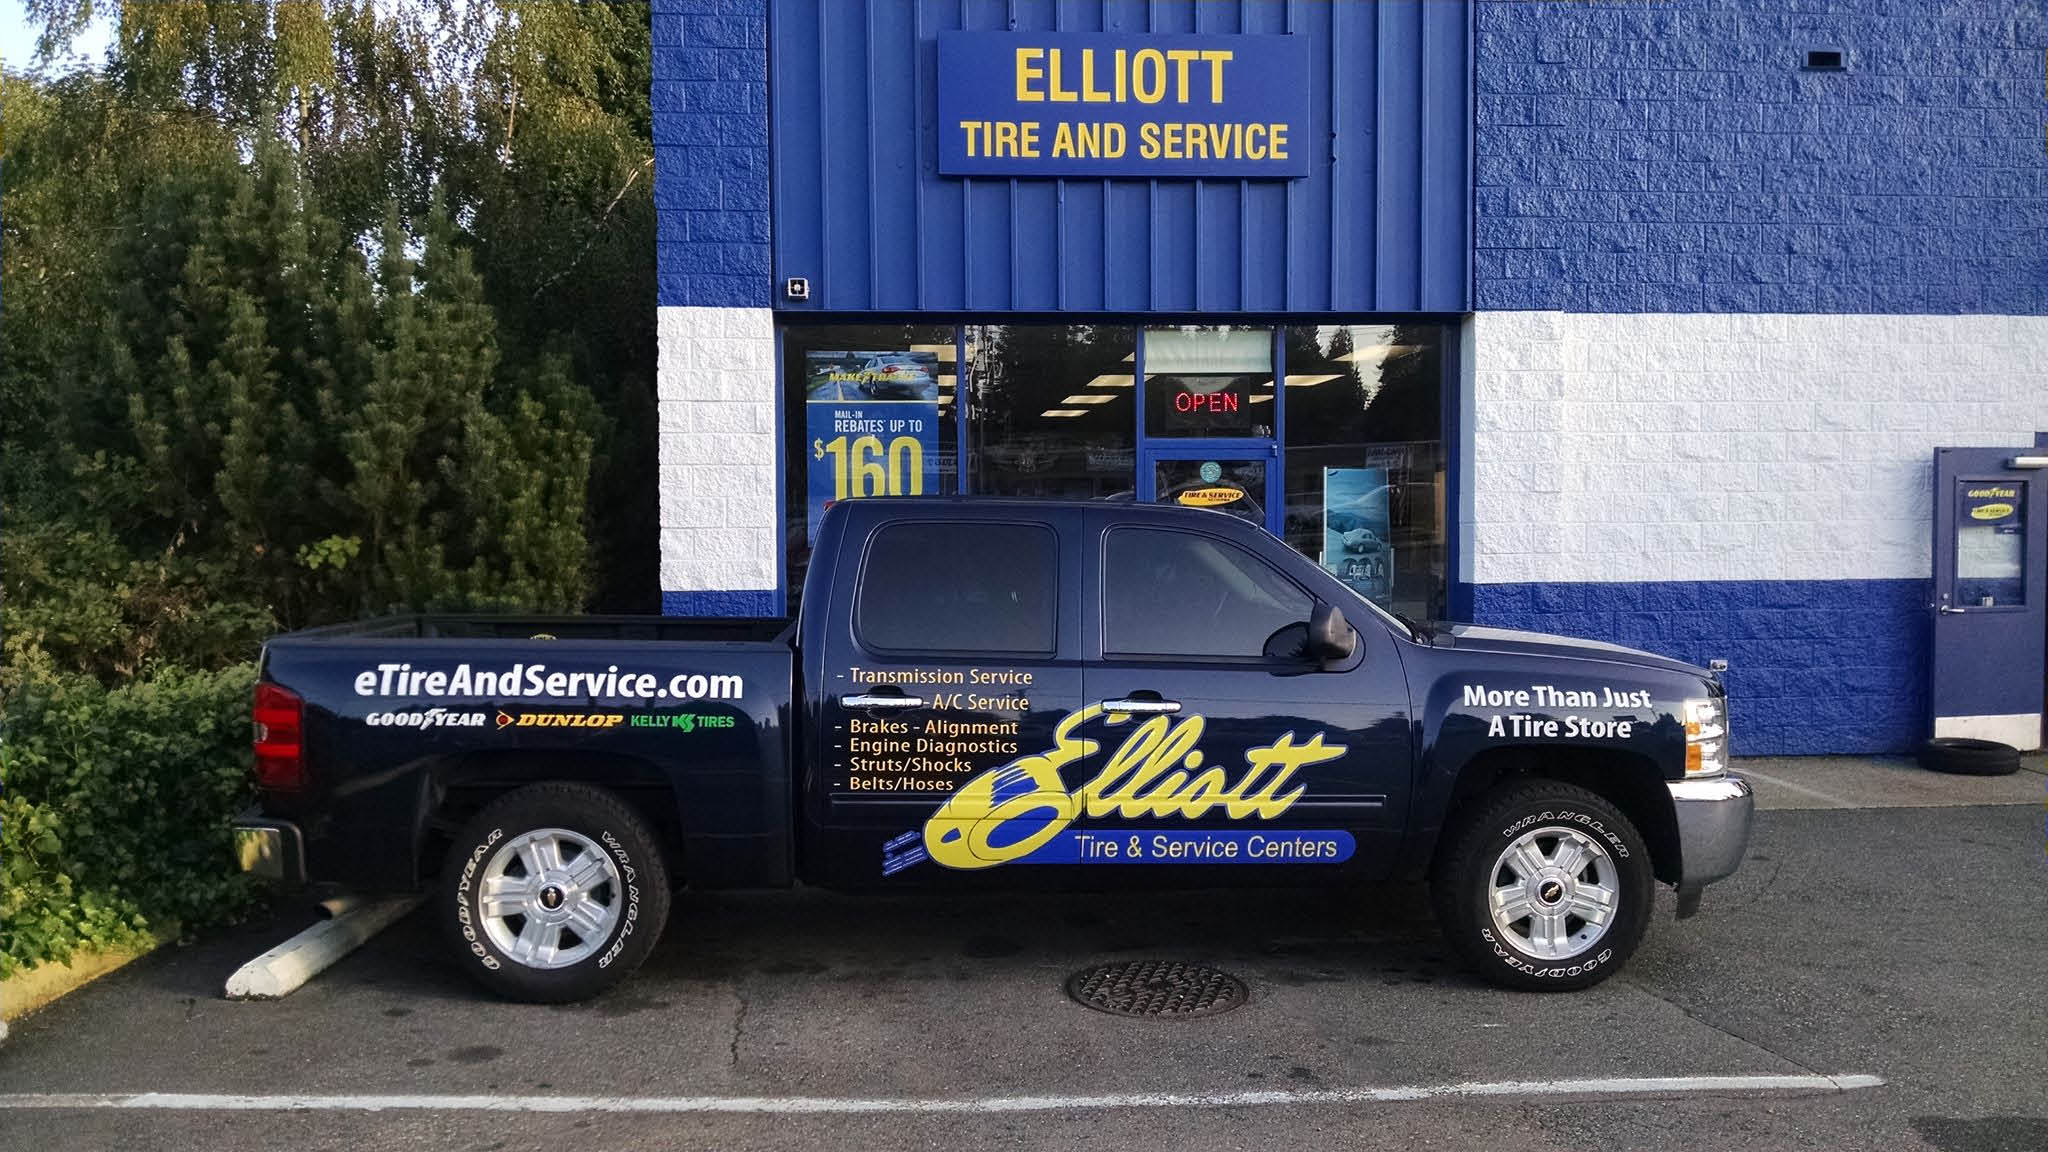 Elliott Tire & Service Centers employ the best car mechanics to provide excellent customer service